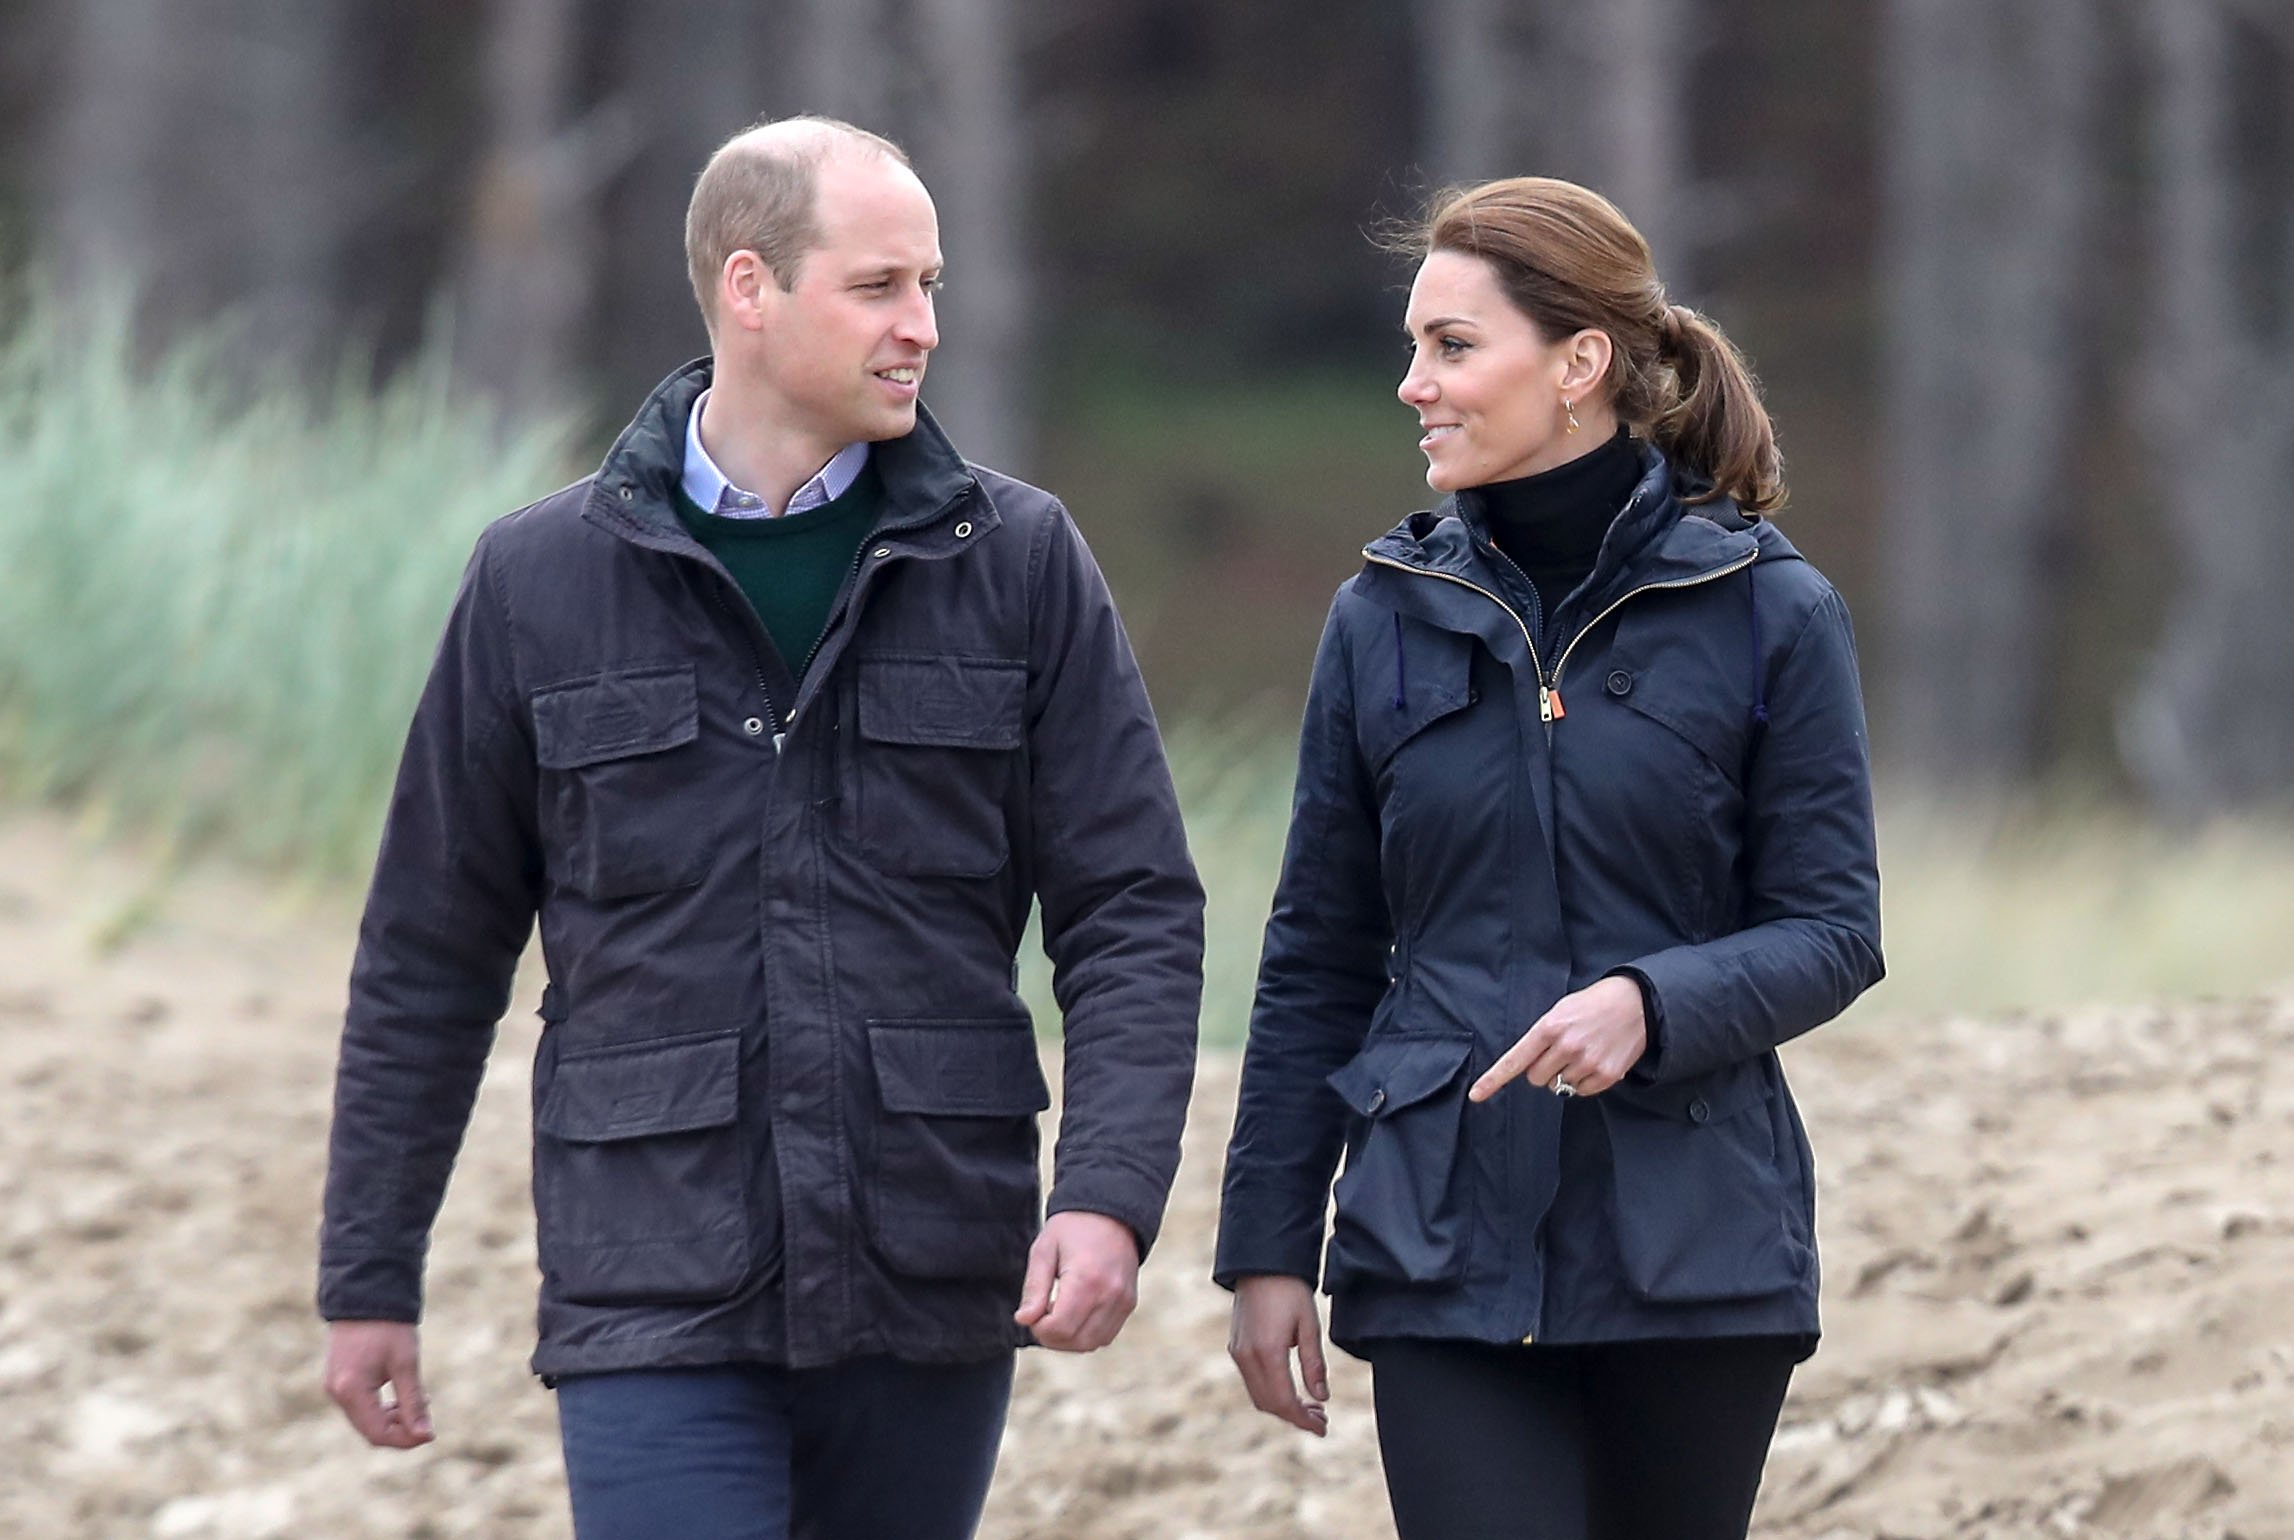 Prince William and Duchess Kate on a visit to Newborough Beach during a visit to North Wales on May 08, 2019 in the United Kingdom | Photo: Getty Images